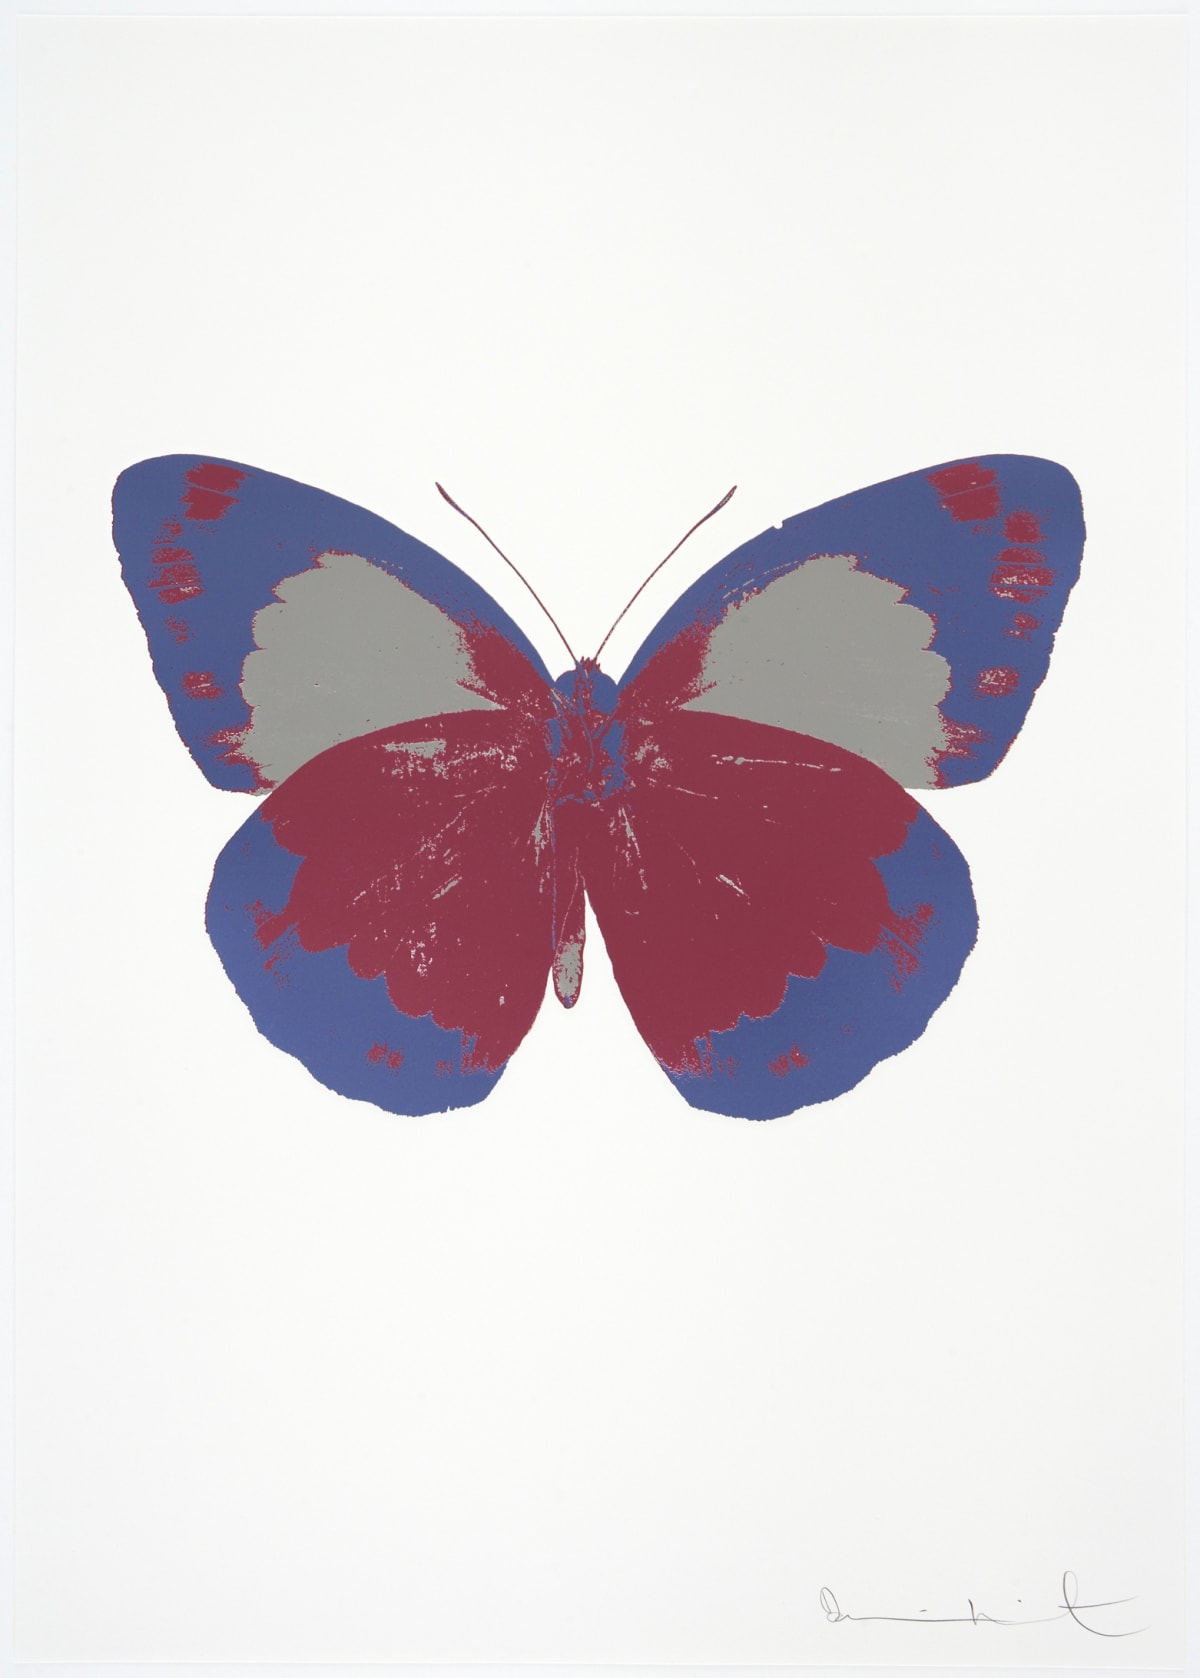 Damien Hirst The Souls II - Loganberry Pink/Cornflower Blue/Silver Gloss, 2010 3 colour foil block on 300gsm Arches 88 archival paper. Signed and numbered. Published by Paul Stolper and Other Criteria 72 x 51cm OC7858 / 658-41 Edition of 15